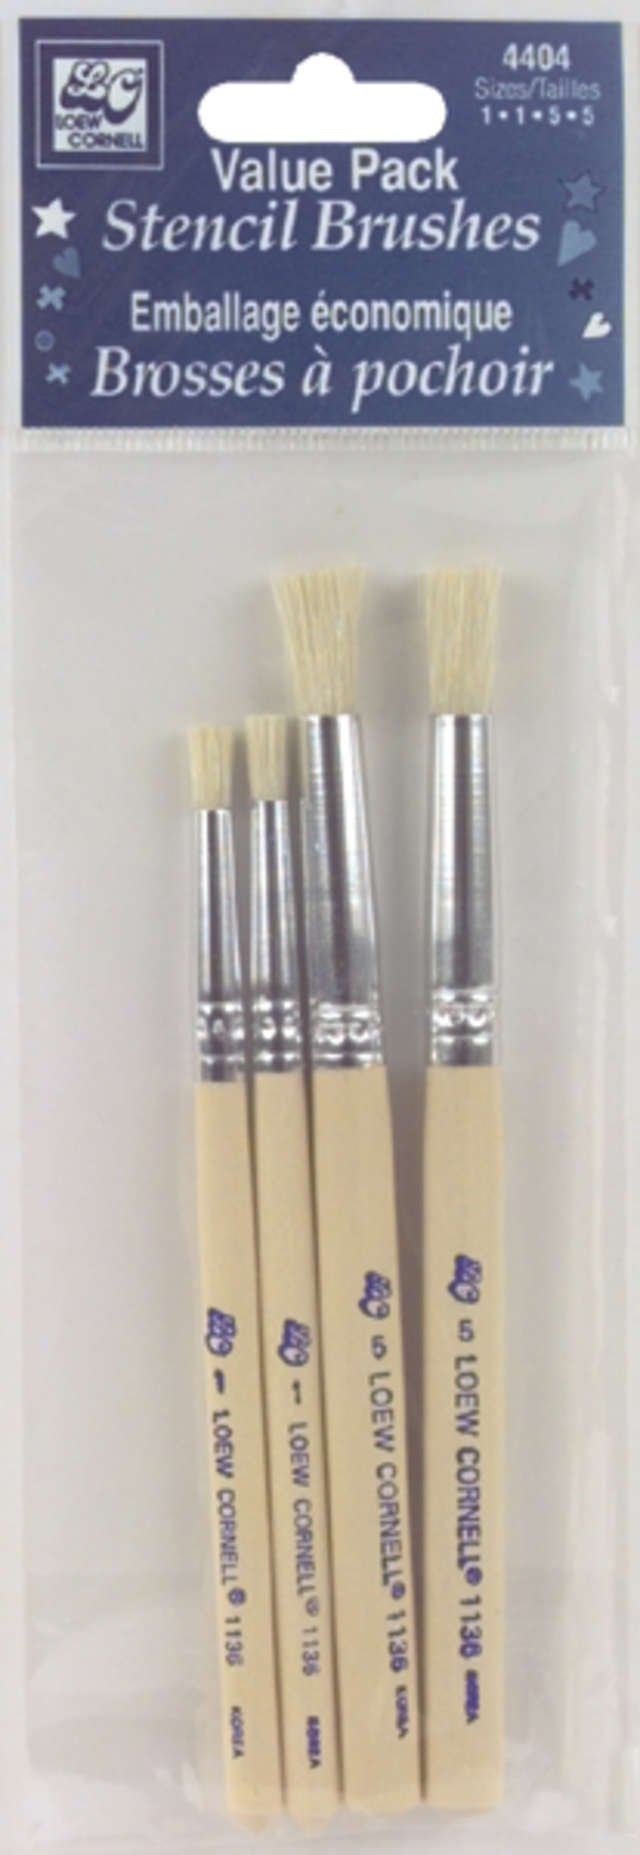 Loew-Cornell 4404 Bristle Stencil Brush Set by Loew-Cornell